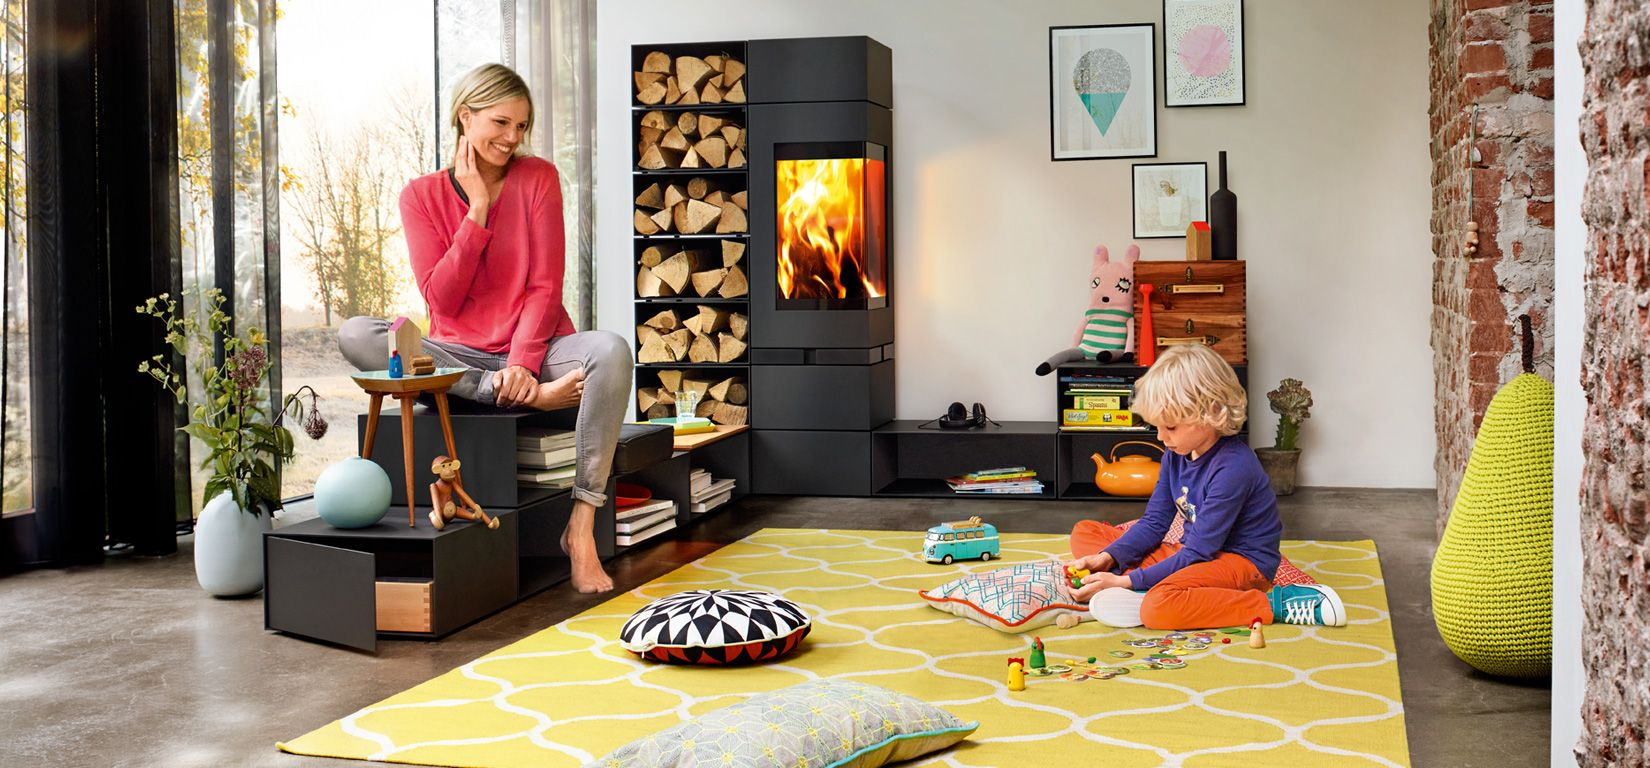 kaminofen von skantherm wir sind feuer und flamme scandinavian living pinterest feuer. Black Bedroom Furniture Sets. Home Design Ideas